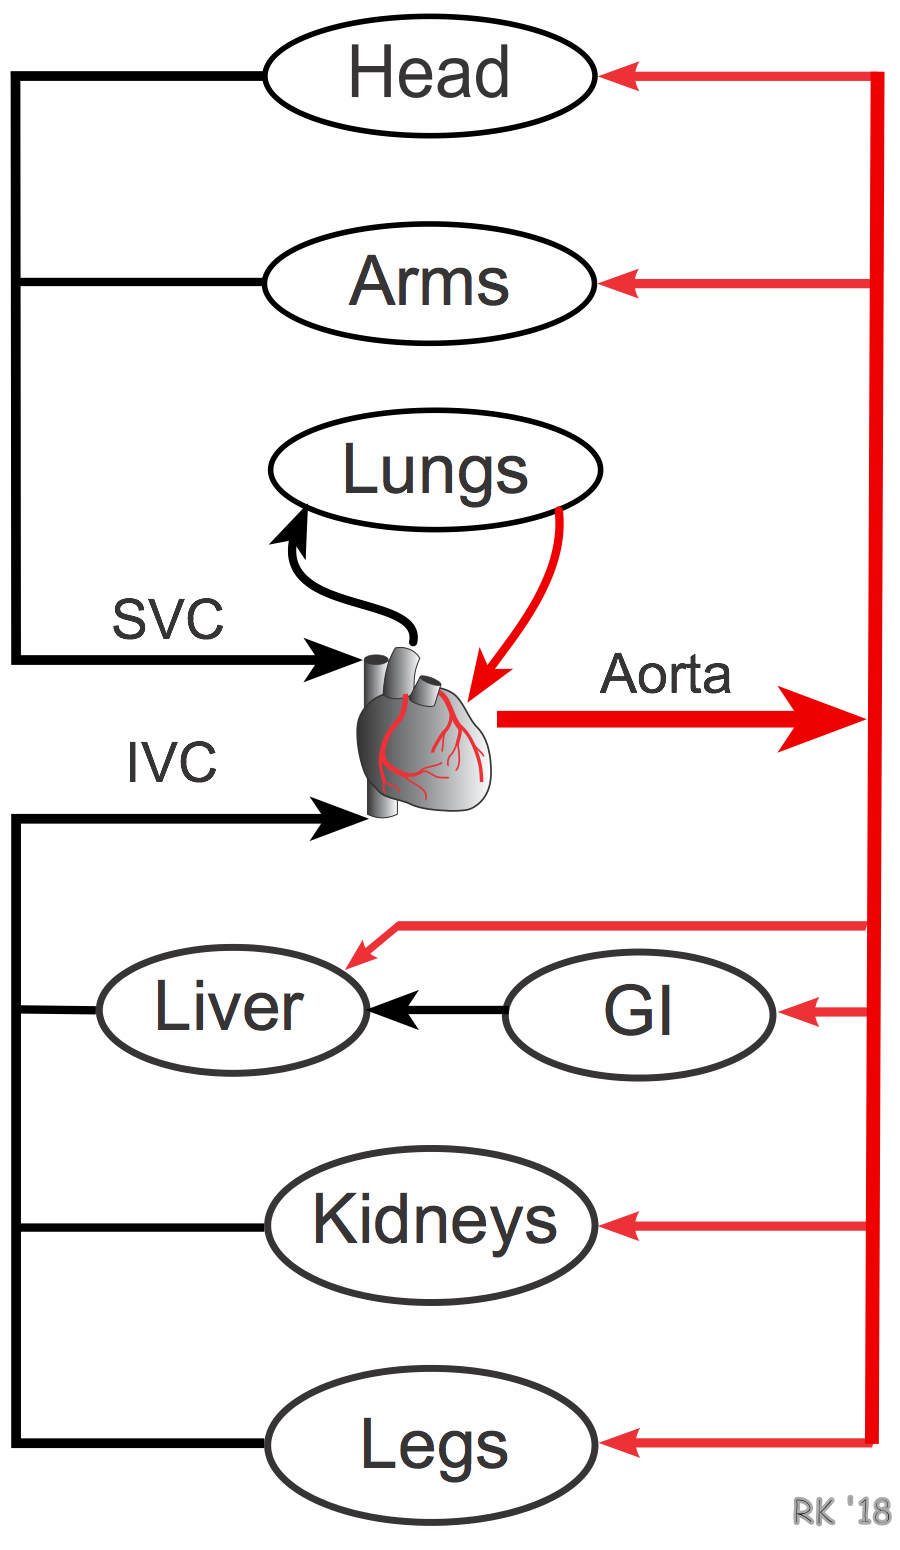 Cv Physiology Series And Parallel Vascular Networks Resistors In Organ Circulation Arrangement